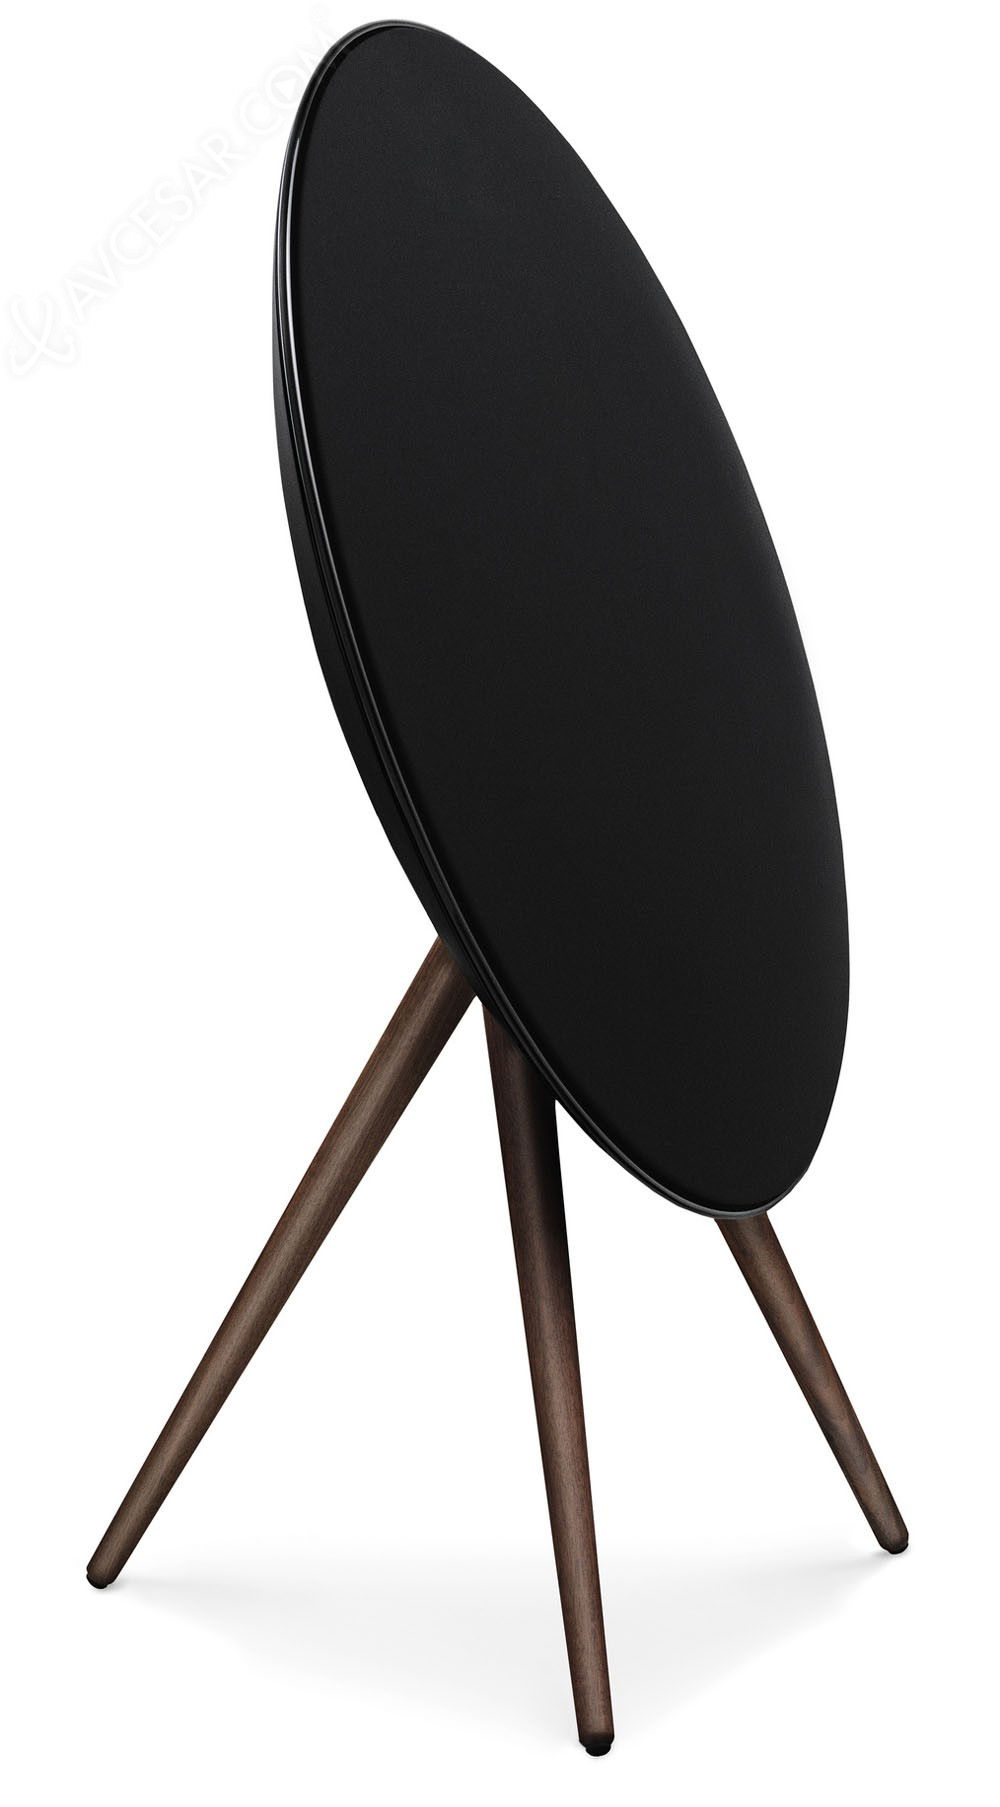 b o beoplay a9 enceinte r seau airplay. Black Bedroom Furniture Sets. Home Design Ideas